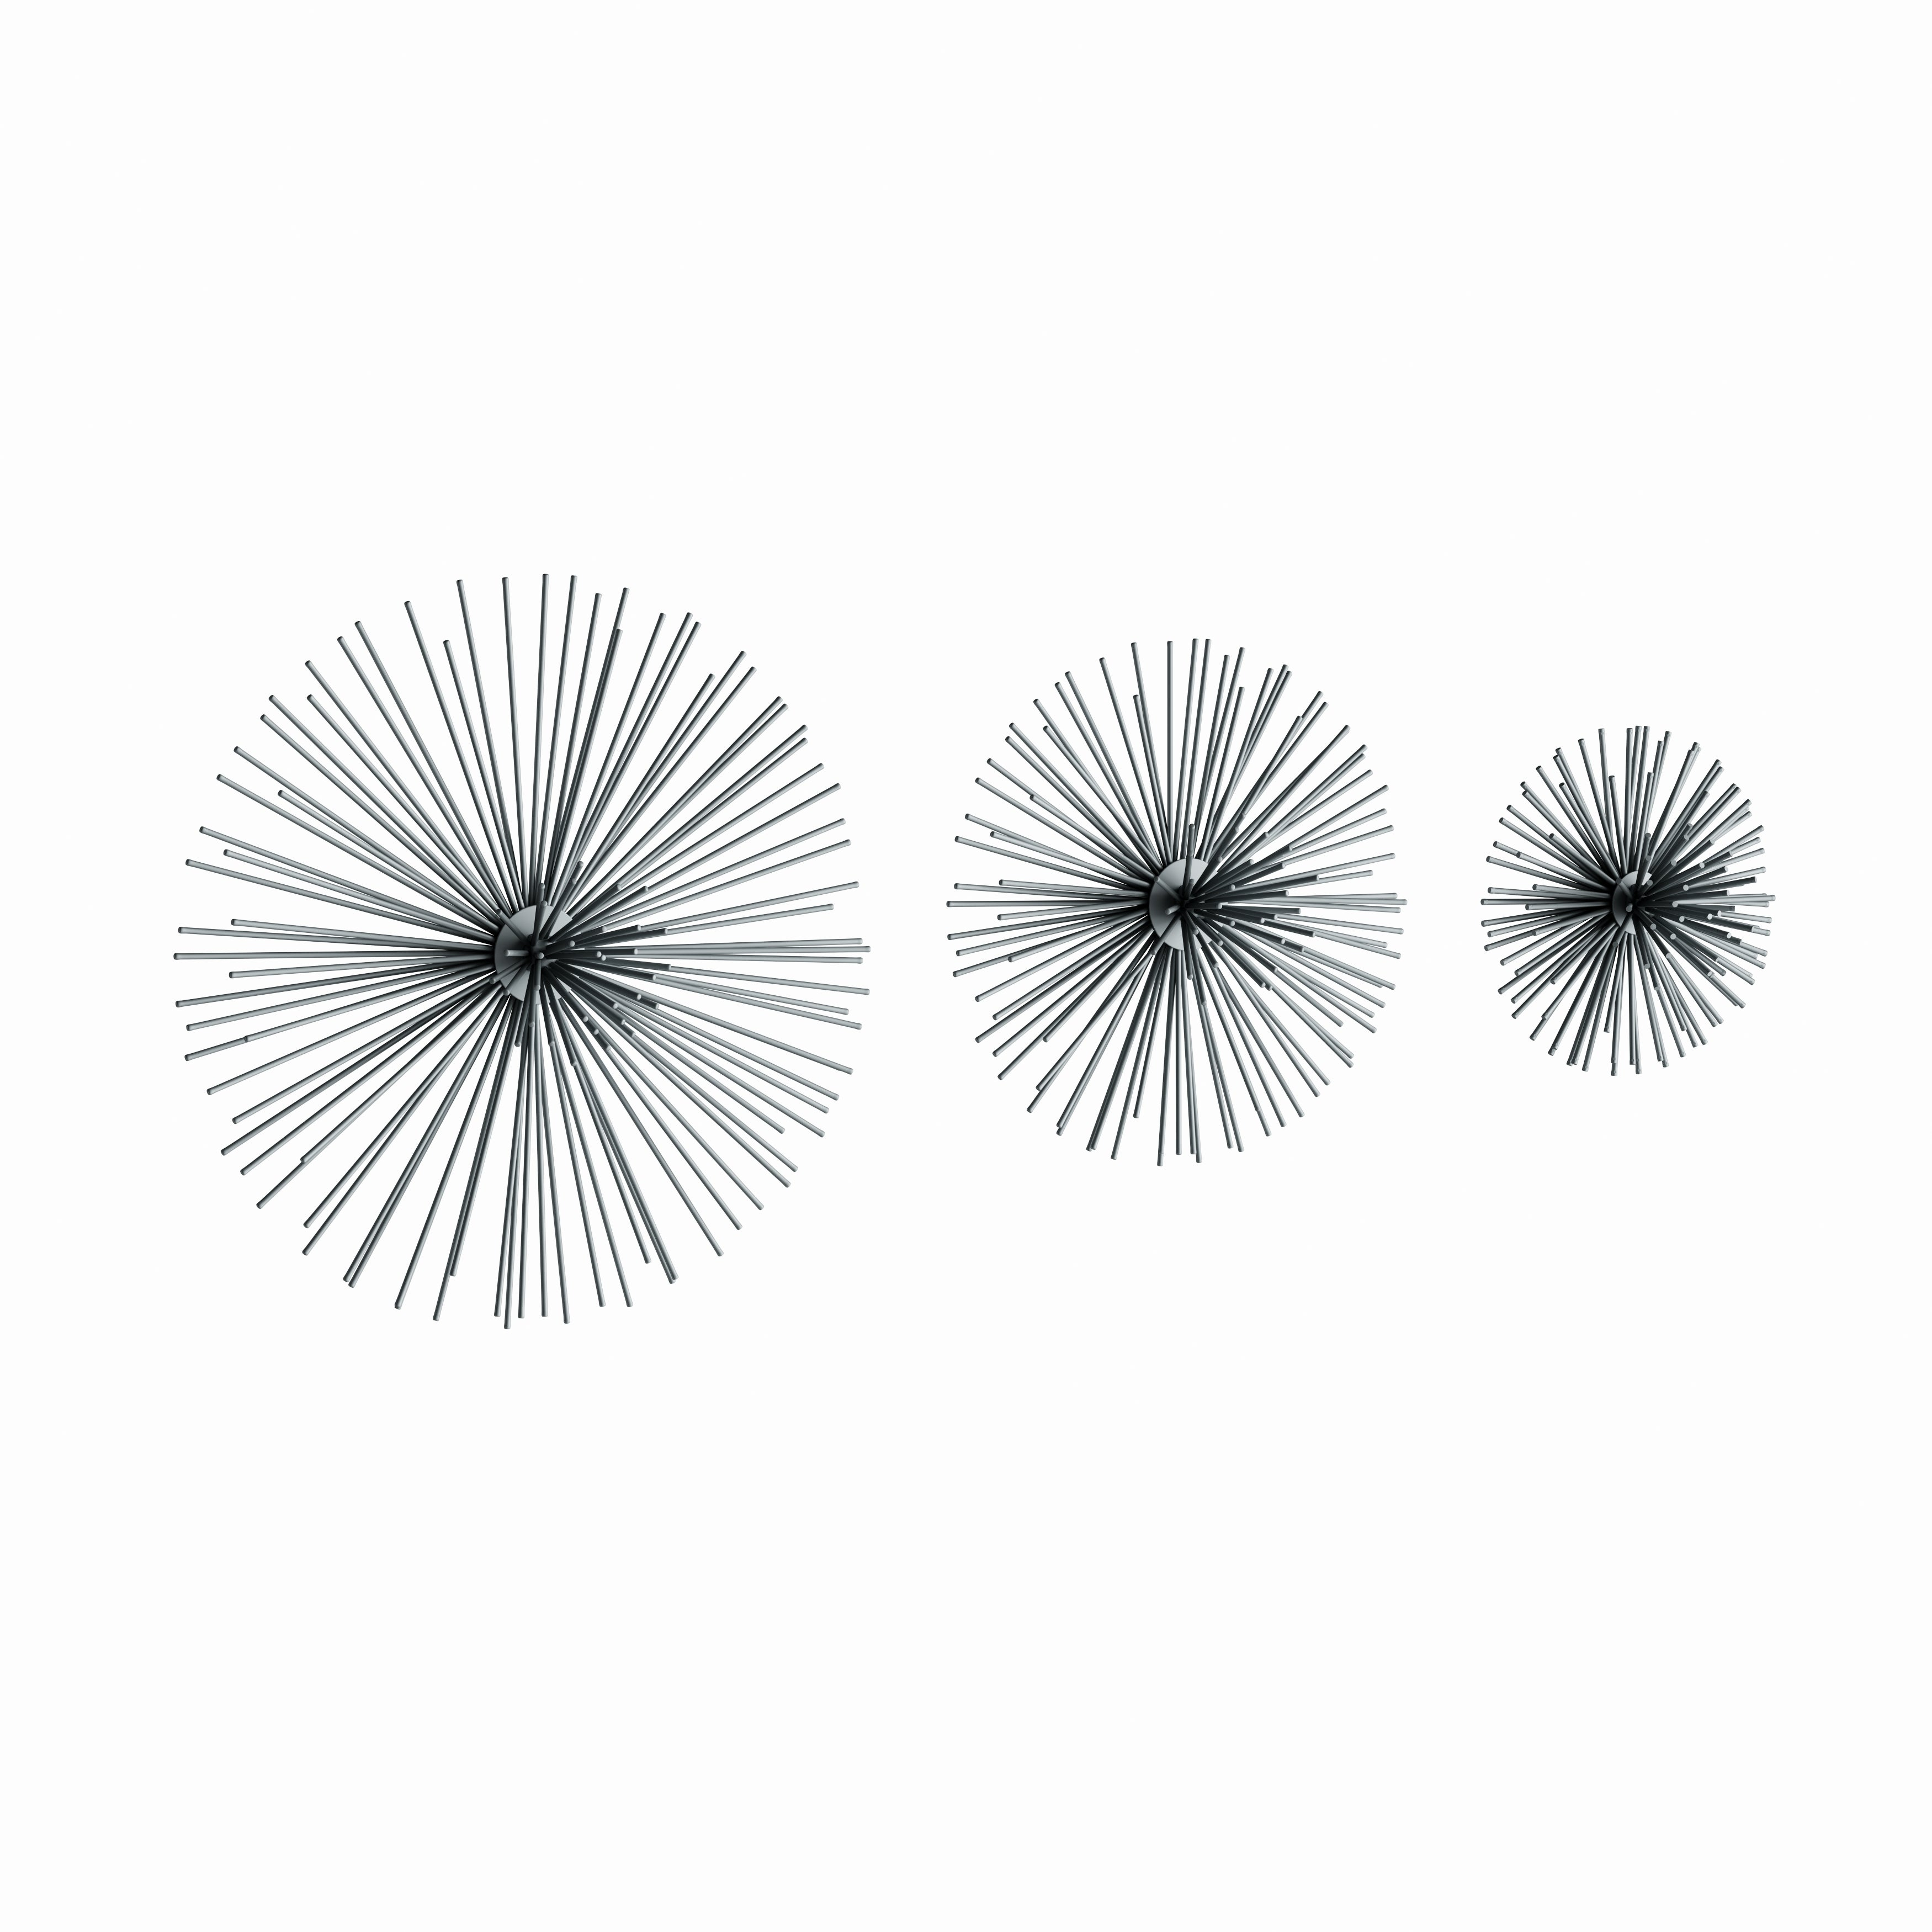 Contemporary 3D Silver Metal Starburst Wall Decor Sculptures Set Of 3 throughout Set of 3 Contemporary 6, 9, and 11 Inch Gold Tin Starburst Sculptures (Image 7 of 30)